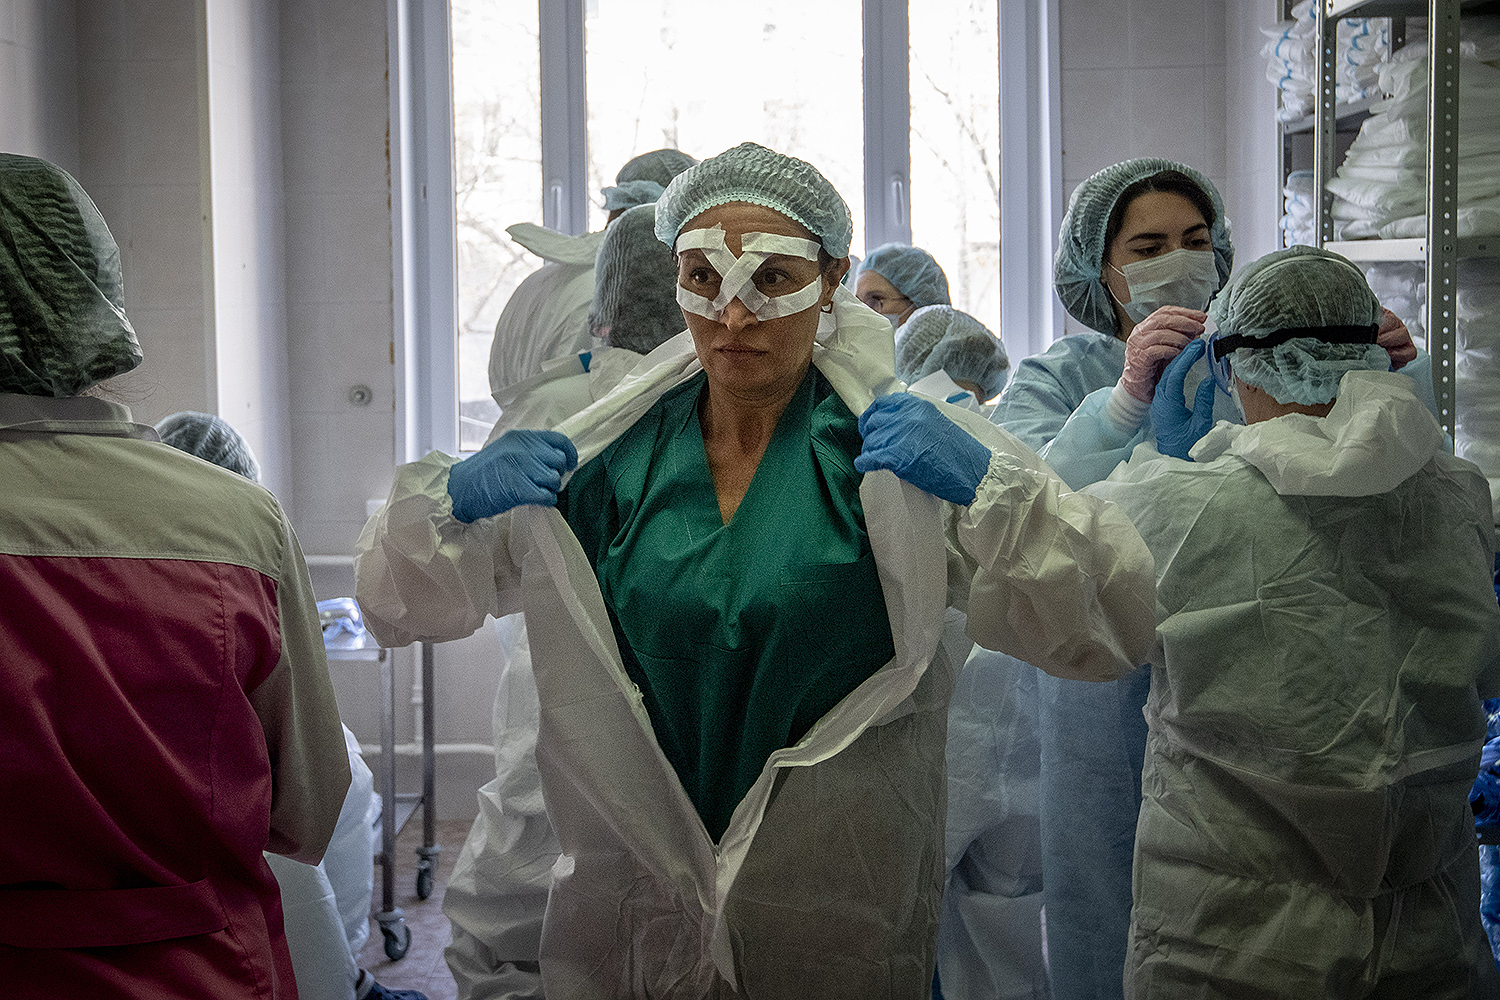 Medical workers get ready for their shift treating coronavirus patients at the Spasokukotsky clinical hospital in Moscow on April 22. YURI KADOBNOV/AFP via Getty Images